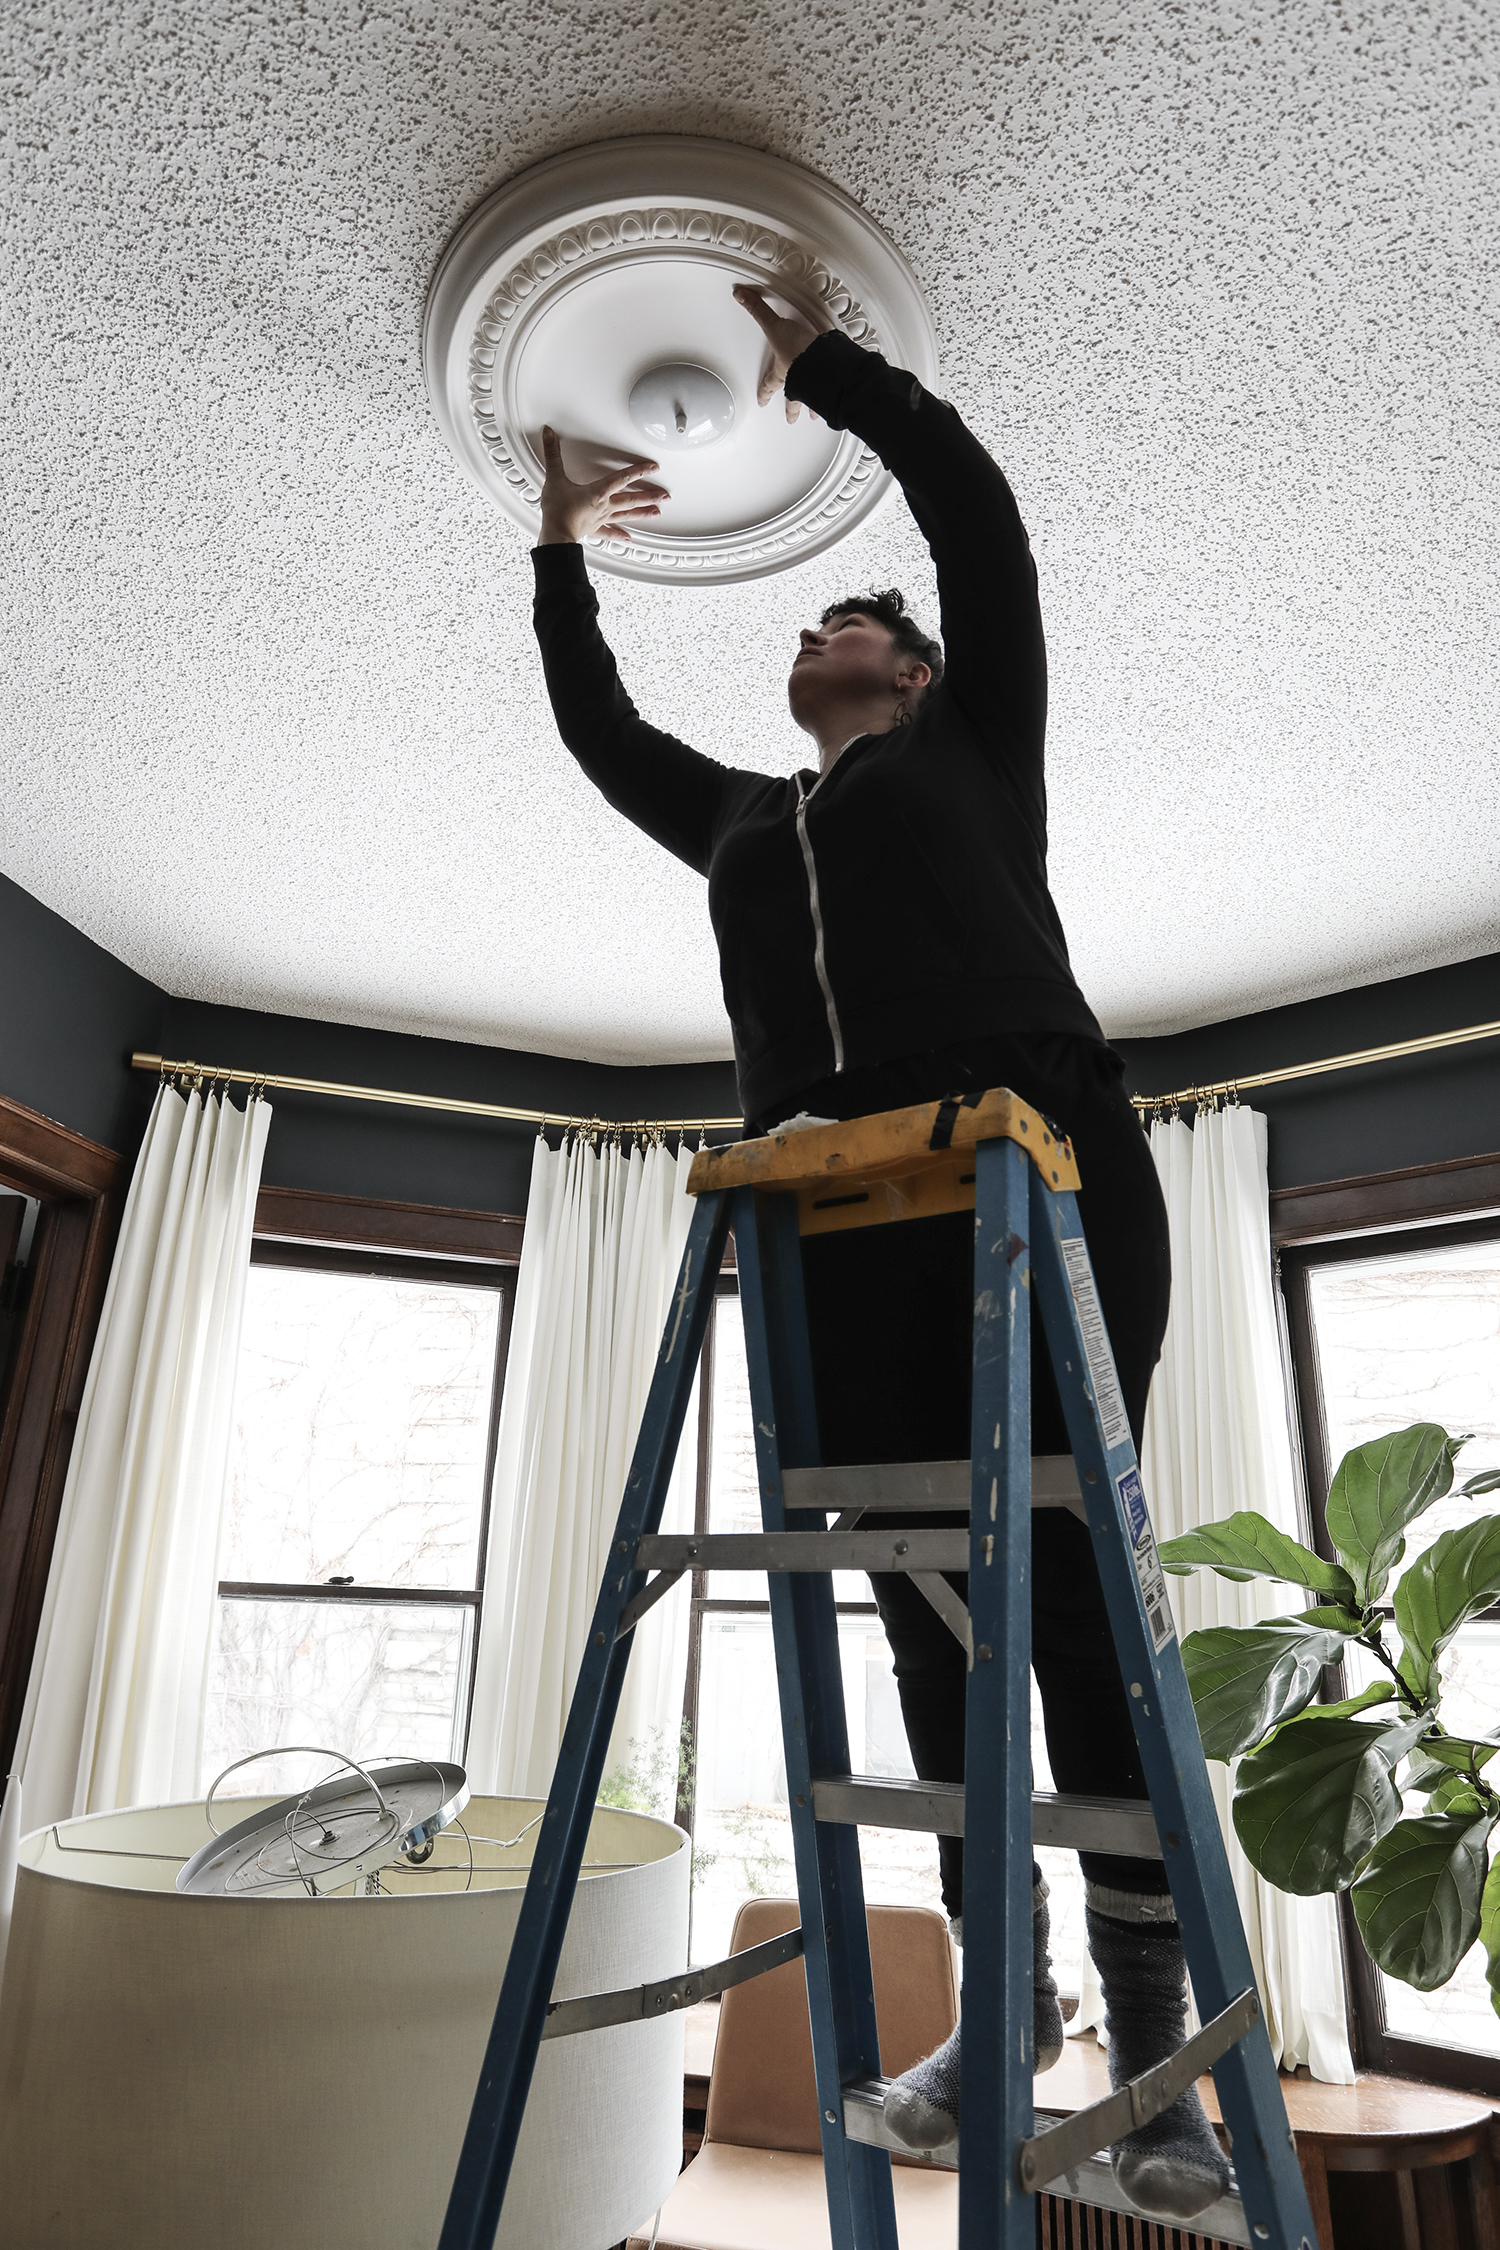 Installing a Ceiling Medallaion | Deuce Cities Henhouse